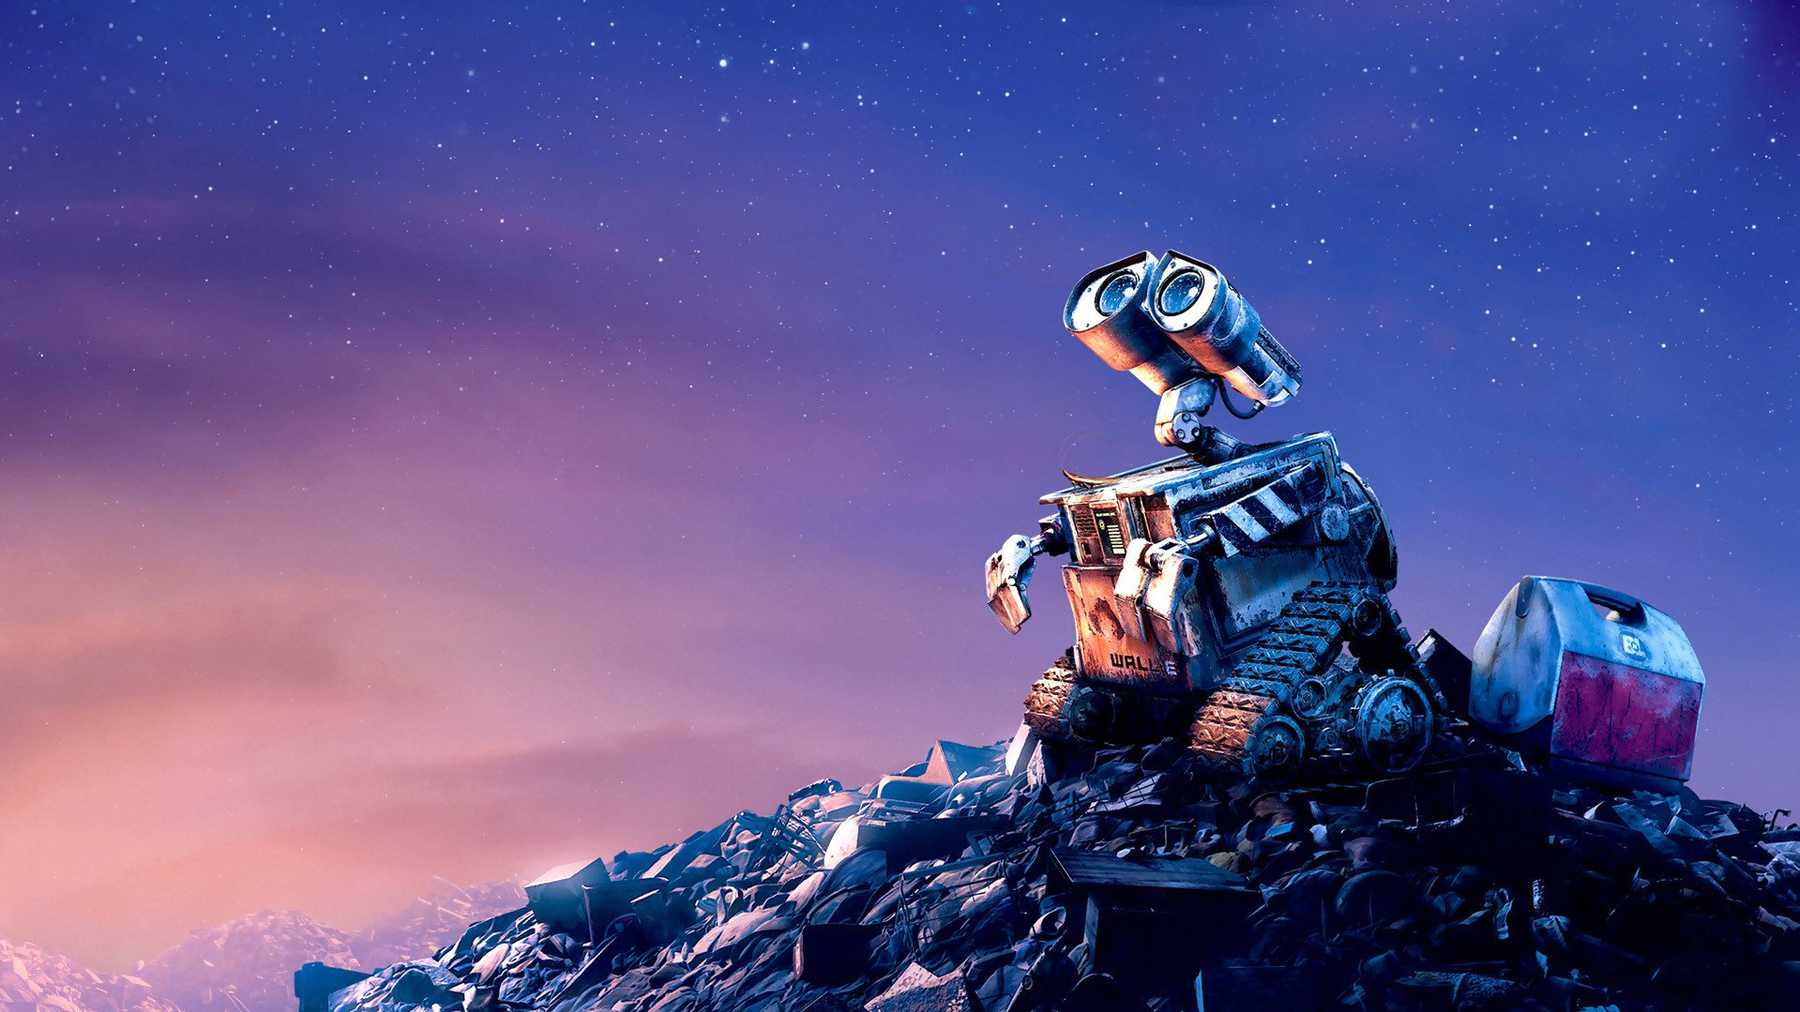 A portrait of WALL-E, the abandoned robot from the 2008 Pixar movie.